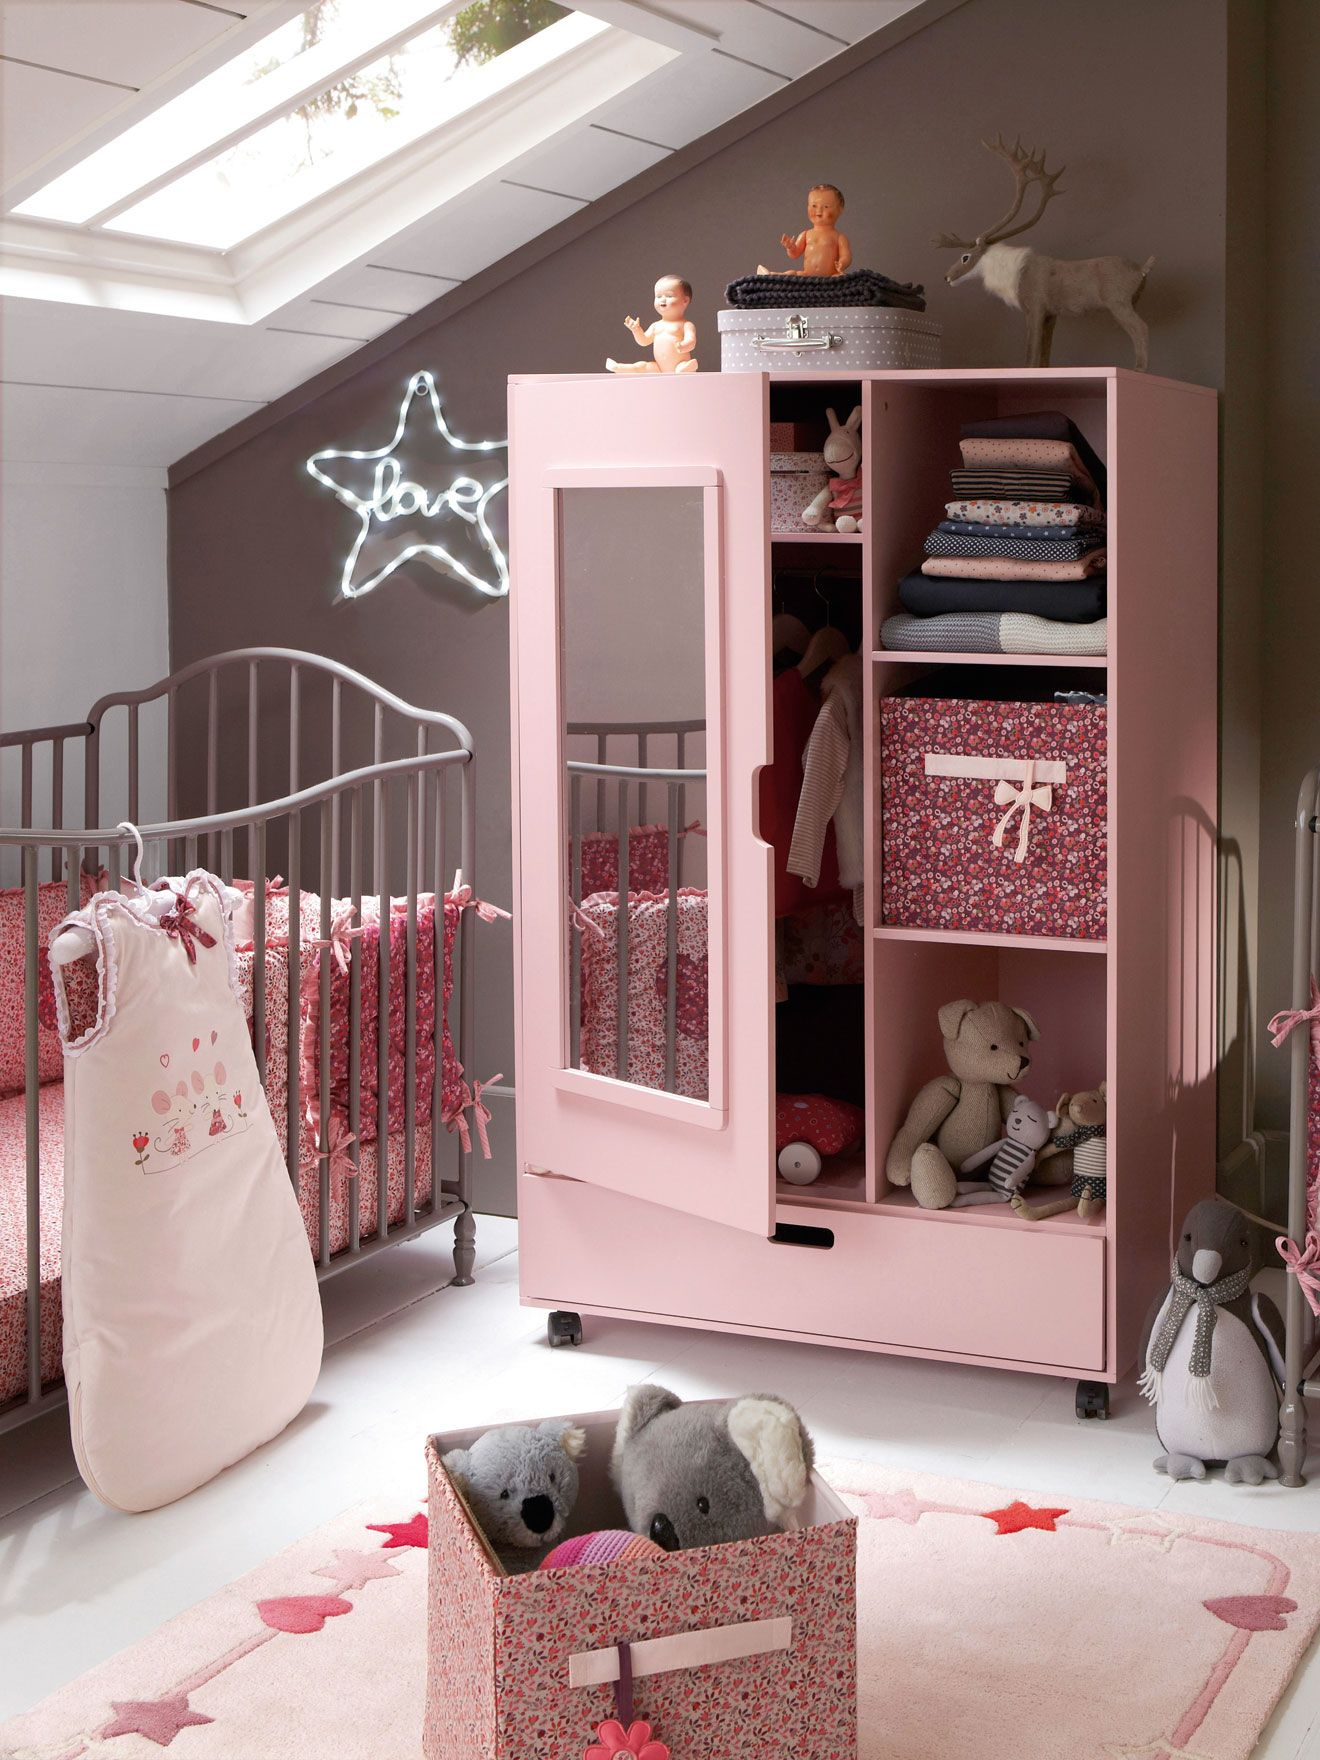 Tapis B B Th Me Baby Souris Chambre B B D Coration Nursery Gar On Fille